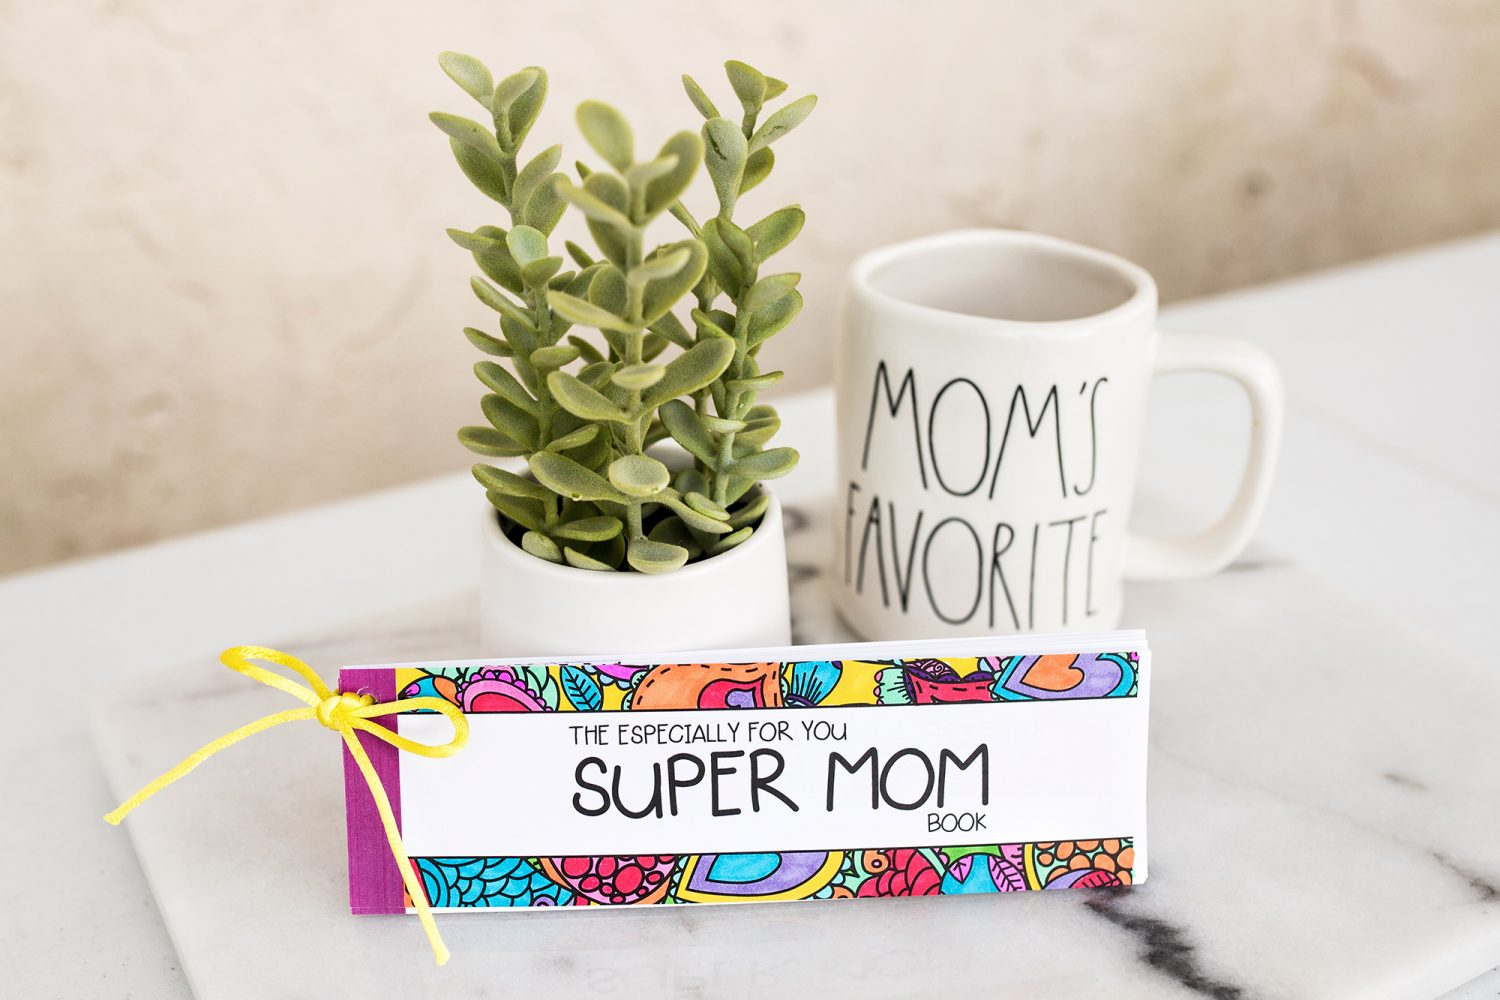 mother's day, mother's day coupon book, crafts, craft, crafts for mother's day, mother's day craft, kids, gift idea, diy, kids craft, crafts for kids, 2019, candy, ideas for mother's day, gifts from kids, diy, activity book, free printable, printable, coupon book for mother's day